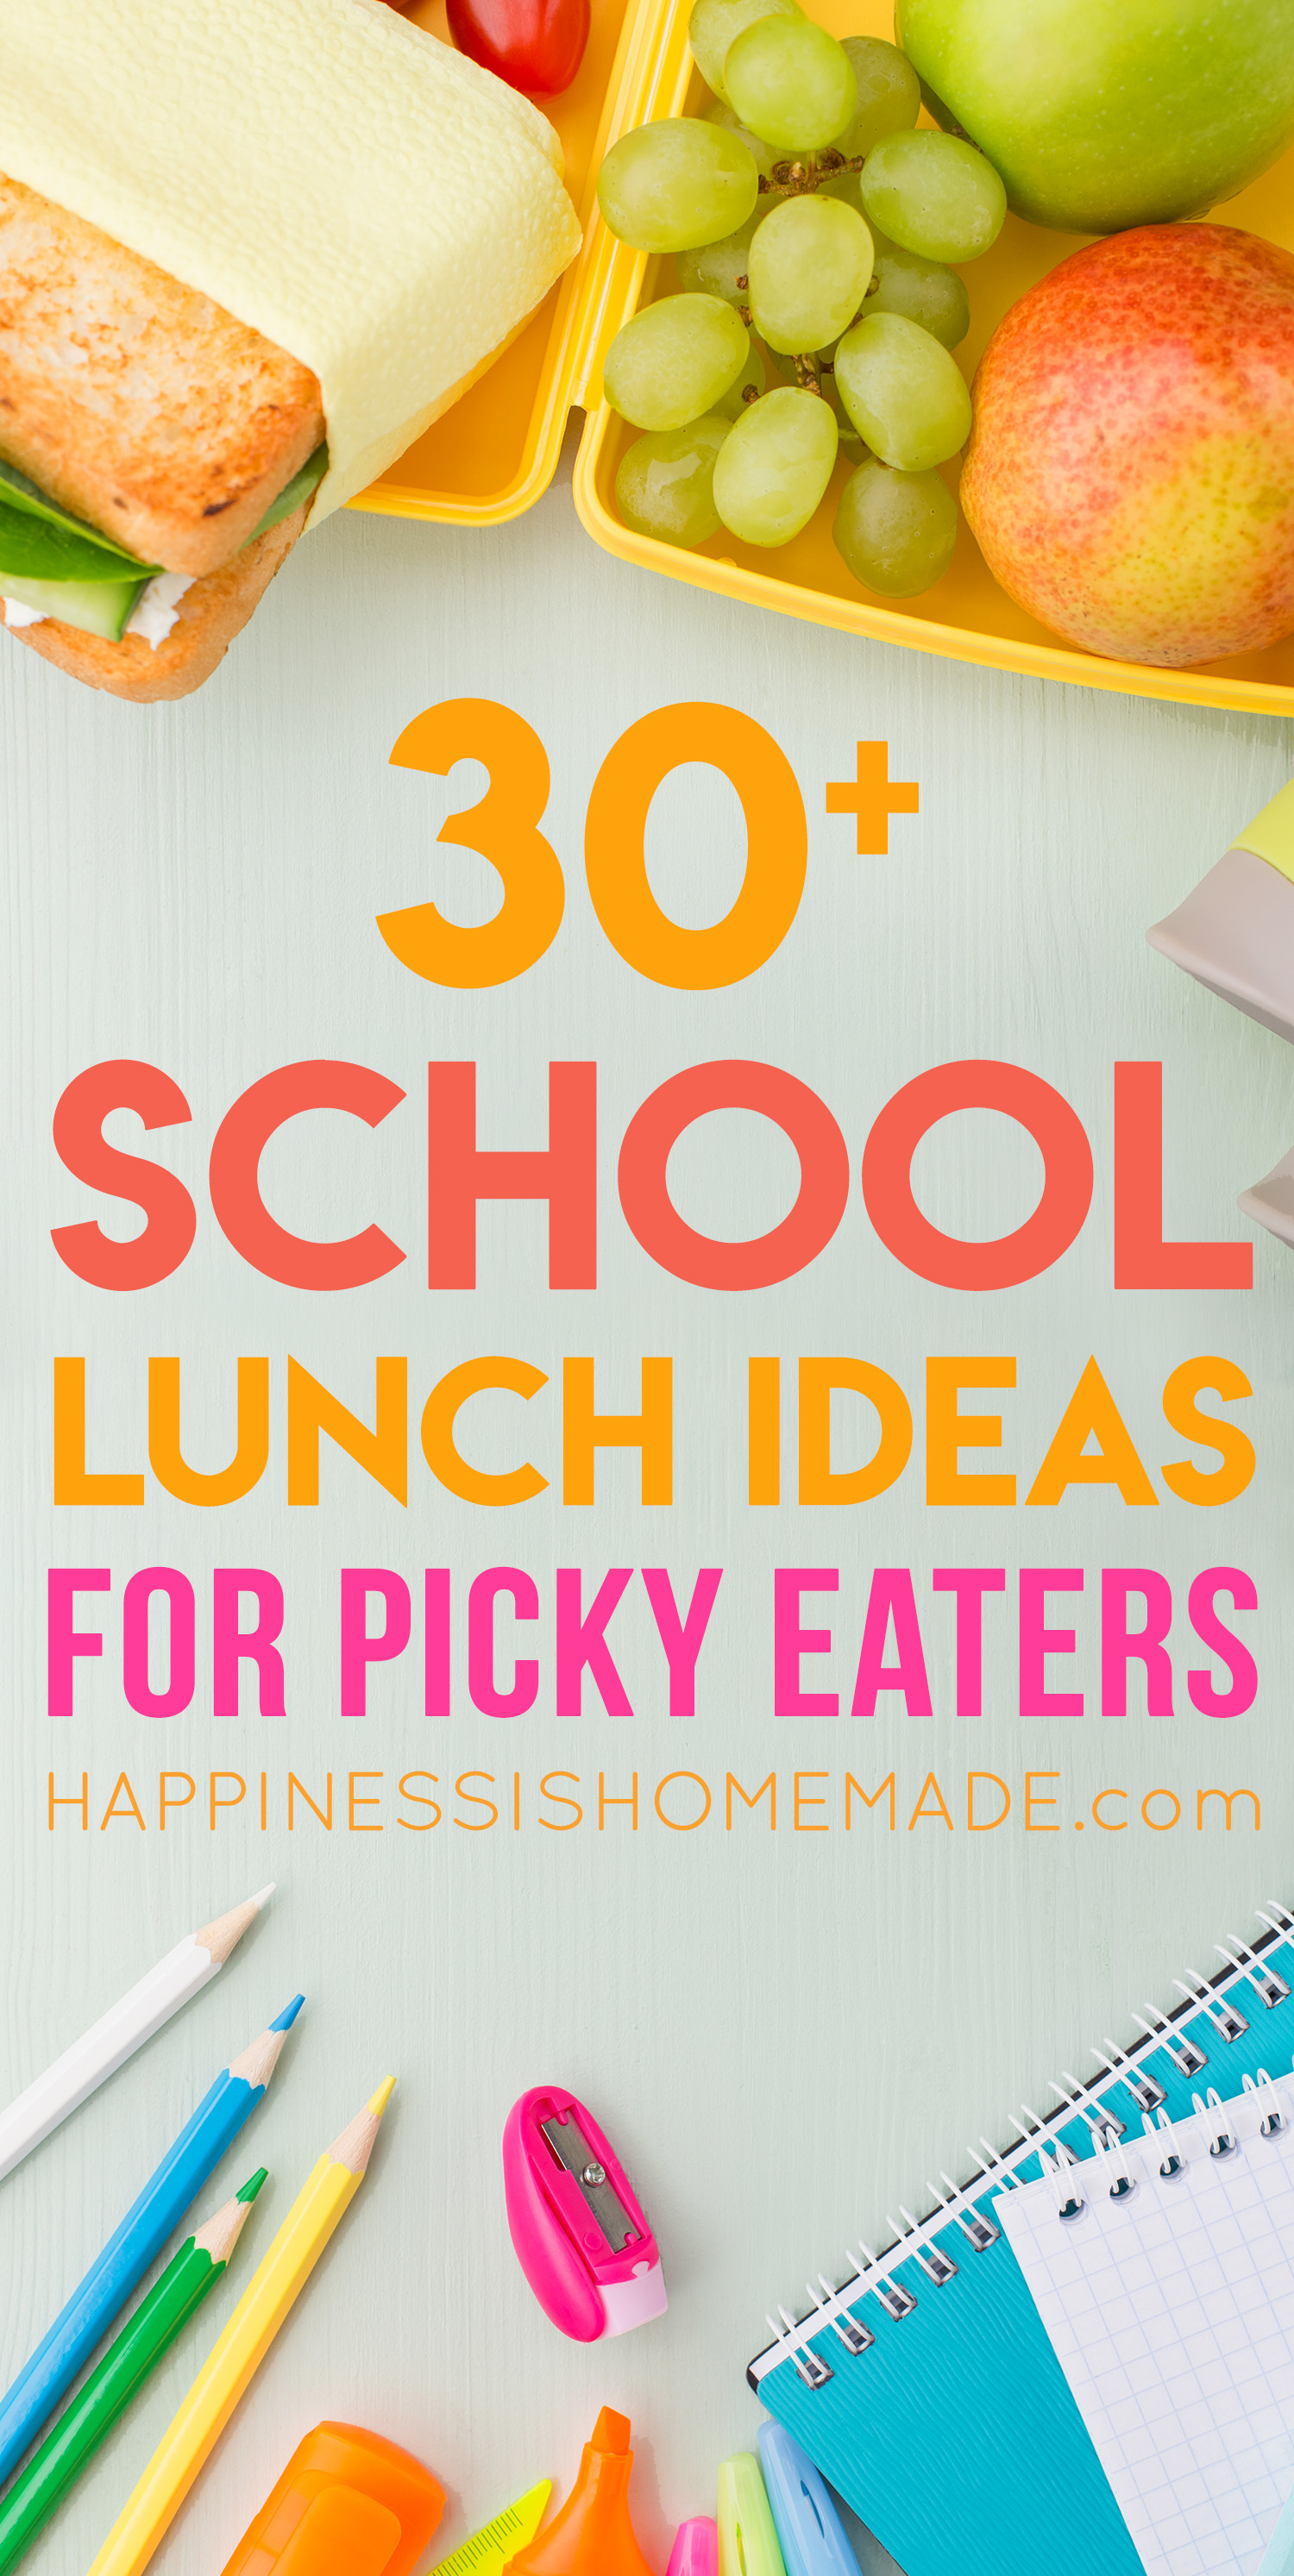 But Sometimes All It Takes Is A Little Creativity And Ingenuity To Spark Your Culinary Imagination Weve Compiled 30 Mix Match School Lunch Ideas